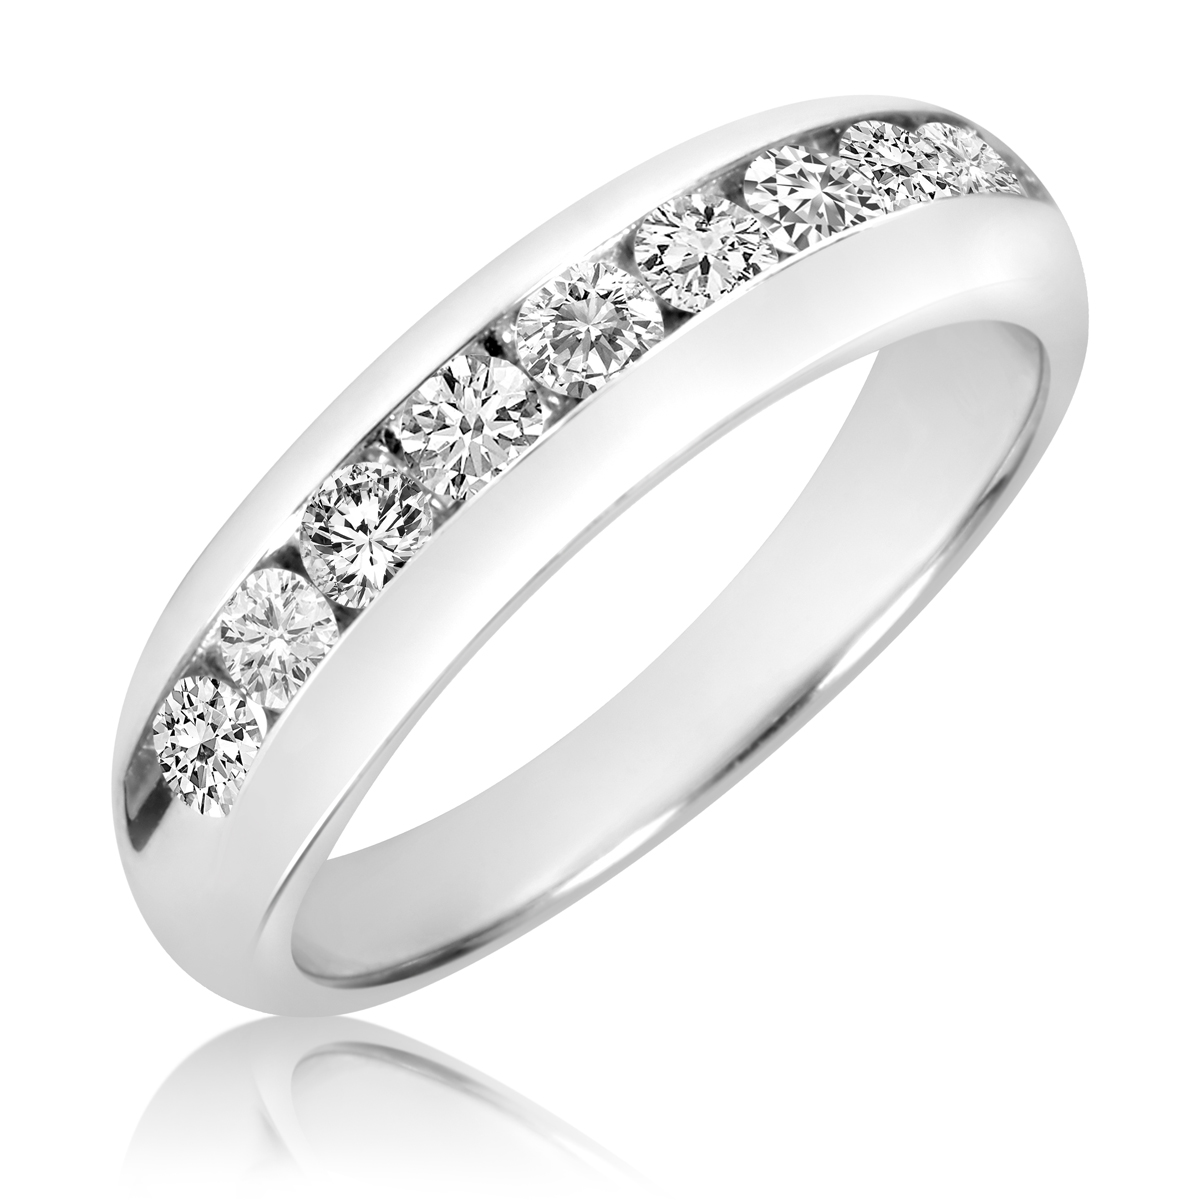 1 Carat TW Diamond Mens Wedding Band 14K White Gold